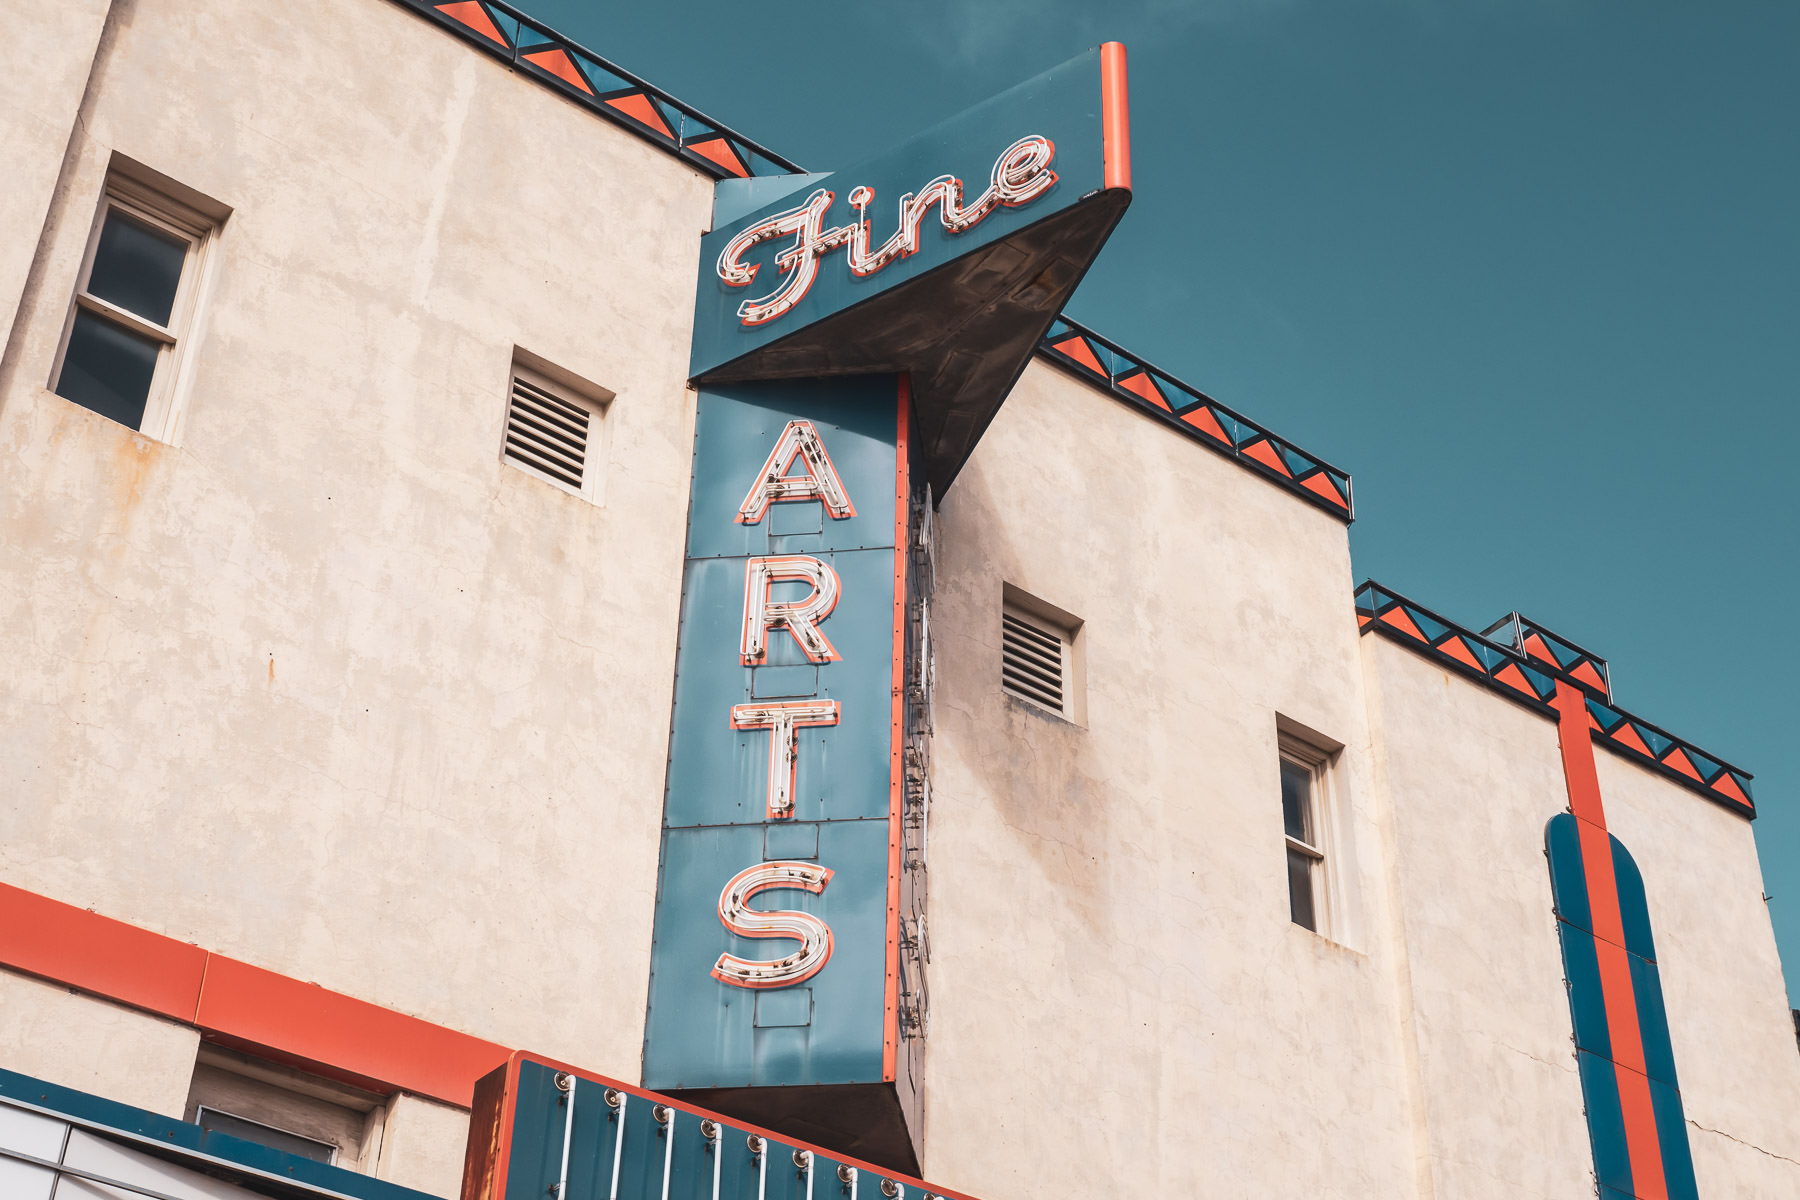 Architectural detail of the Fine Arts Theatre in Downtown Denton, Texas.